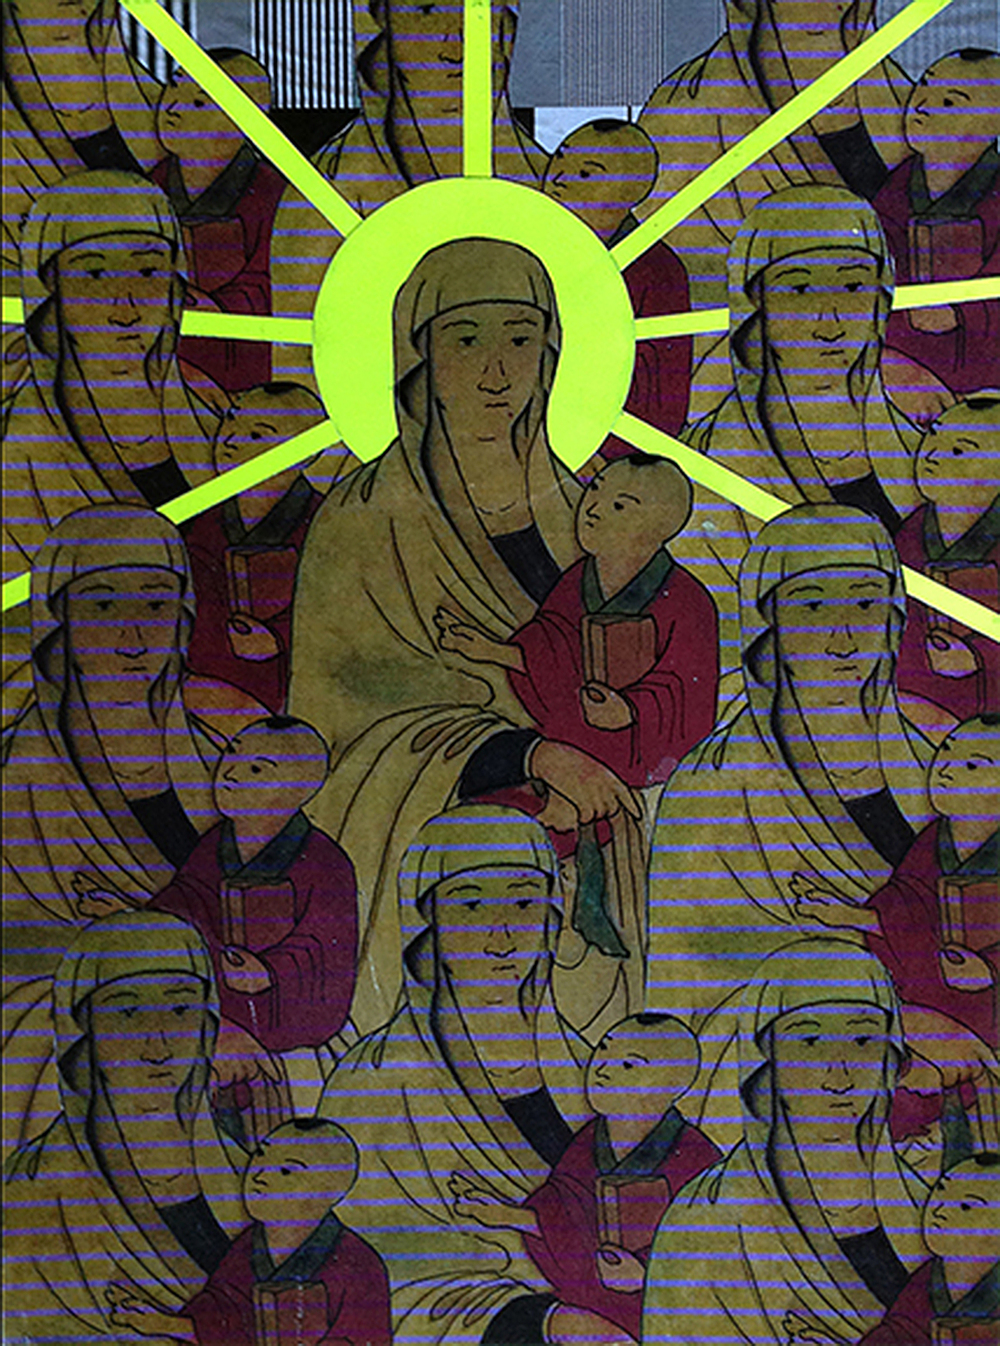 Giappo chinesemadonna(hires).jpg